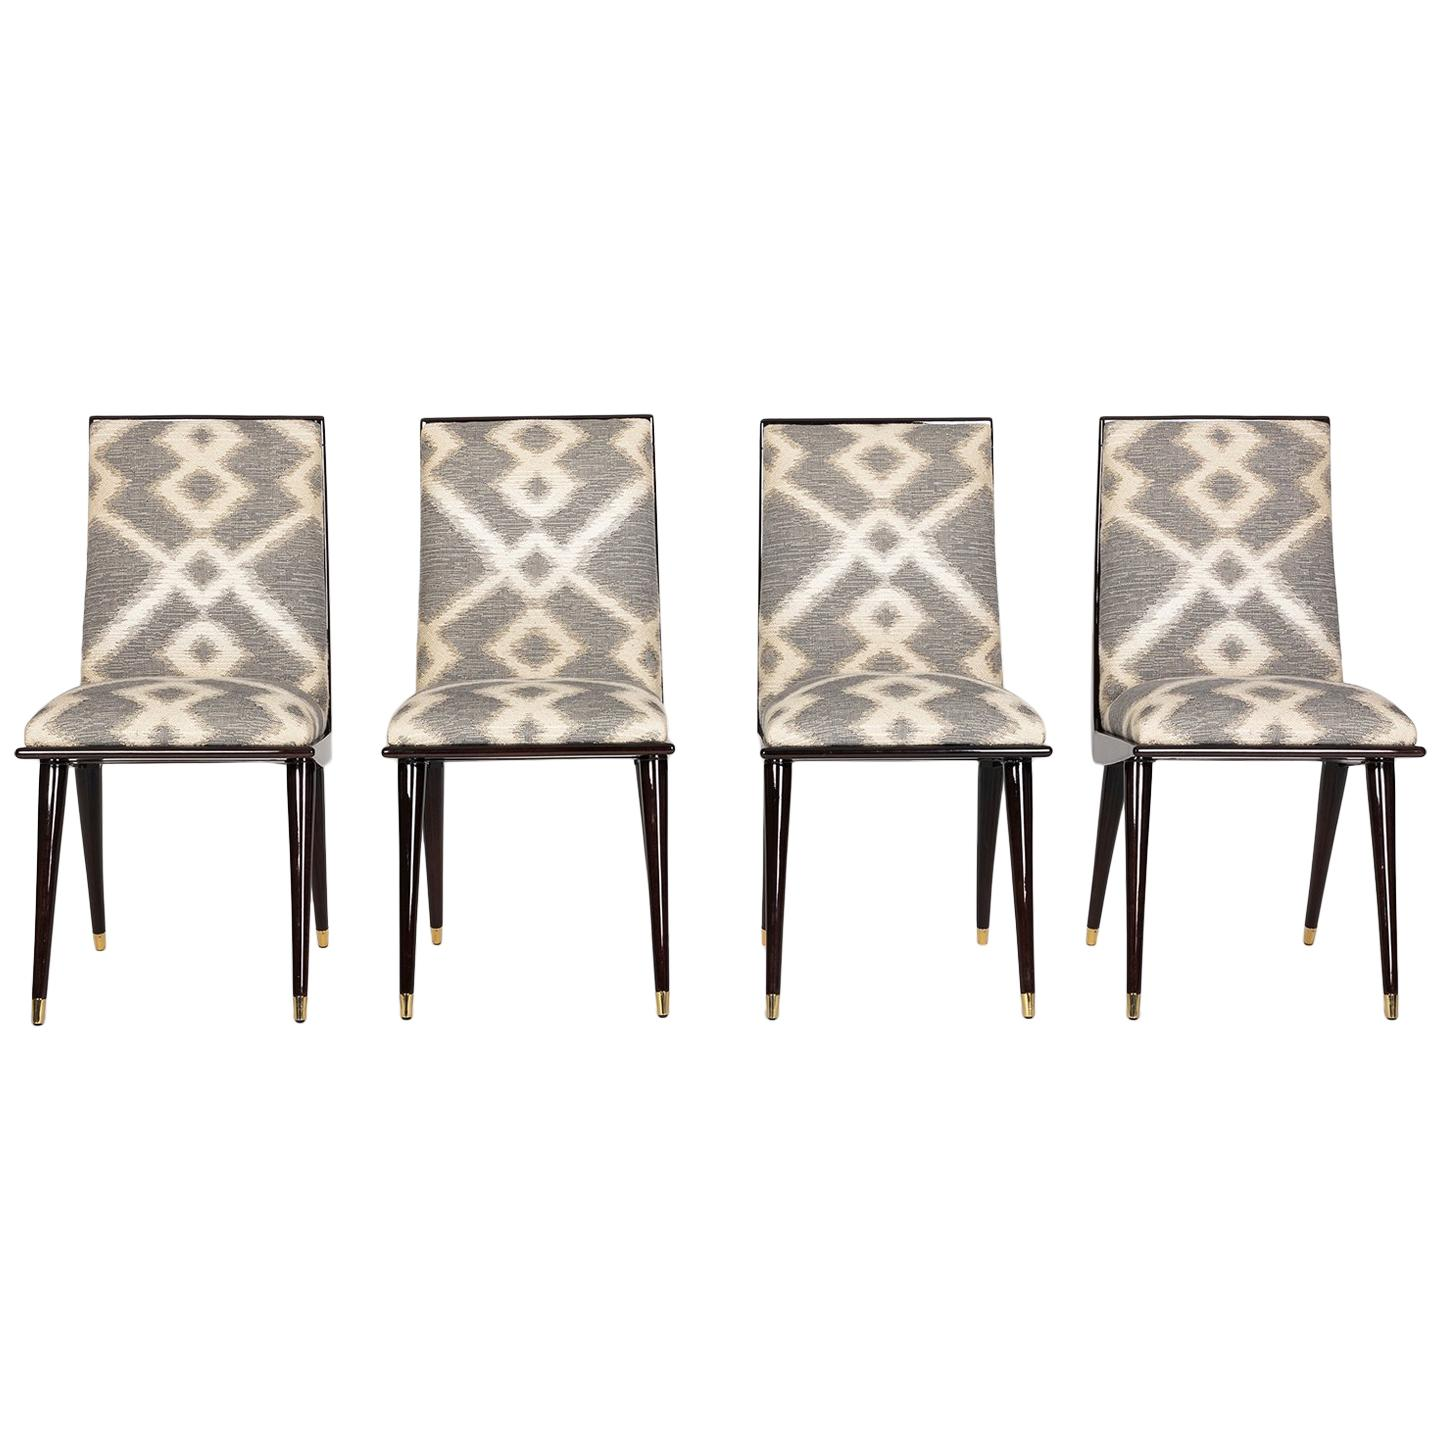 Mid Century Hardwood And Brass Italian Dining Chairs In Robert Allen Ikat  Fabric For Sale